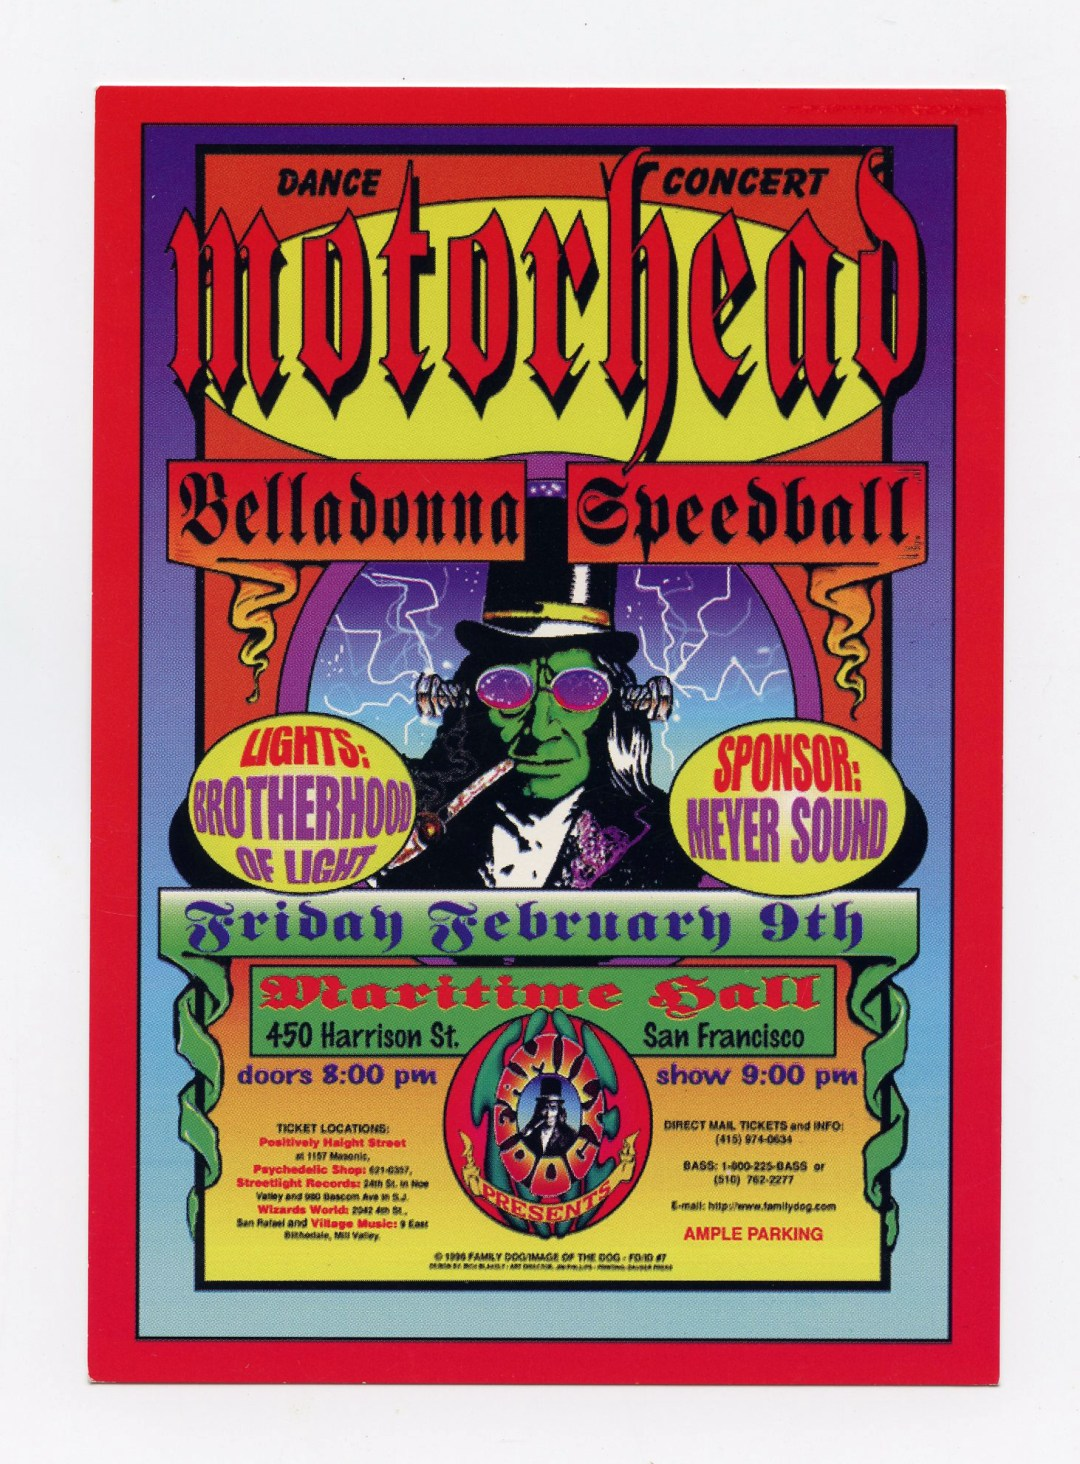 Maritime Hall Handbill 1995 Feb 9 Motorhead Bellasonna Speedball MHP 007